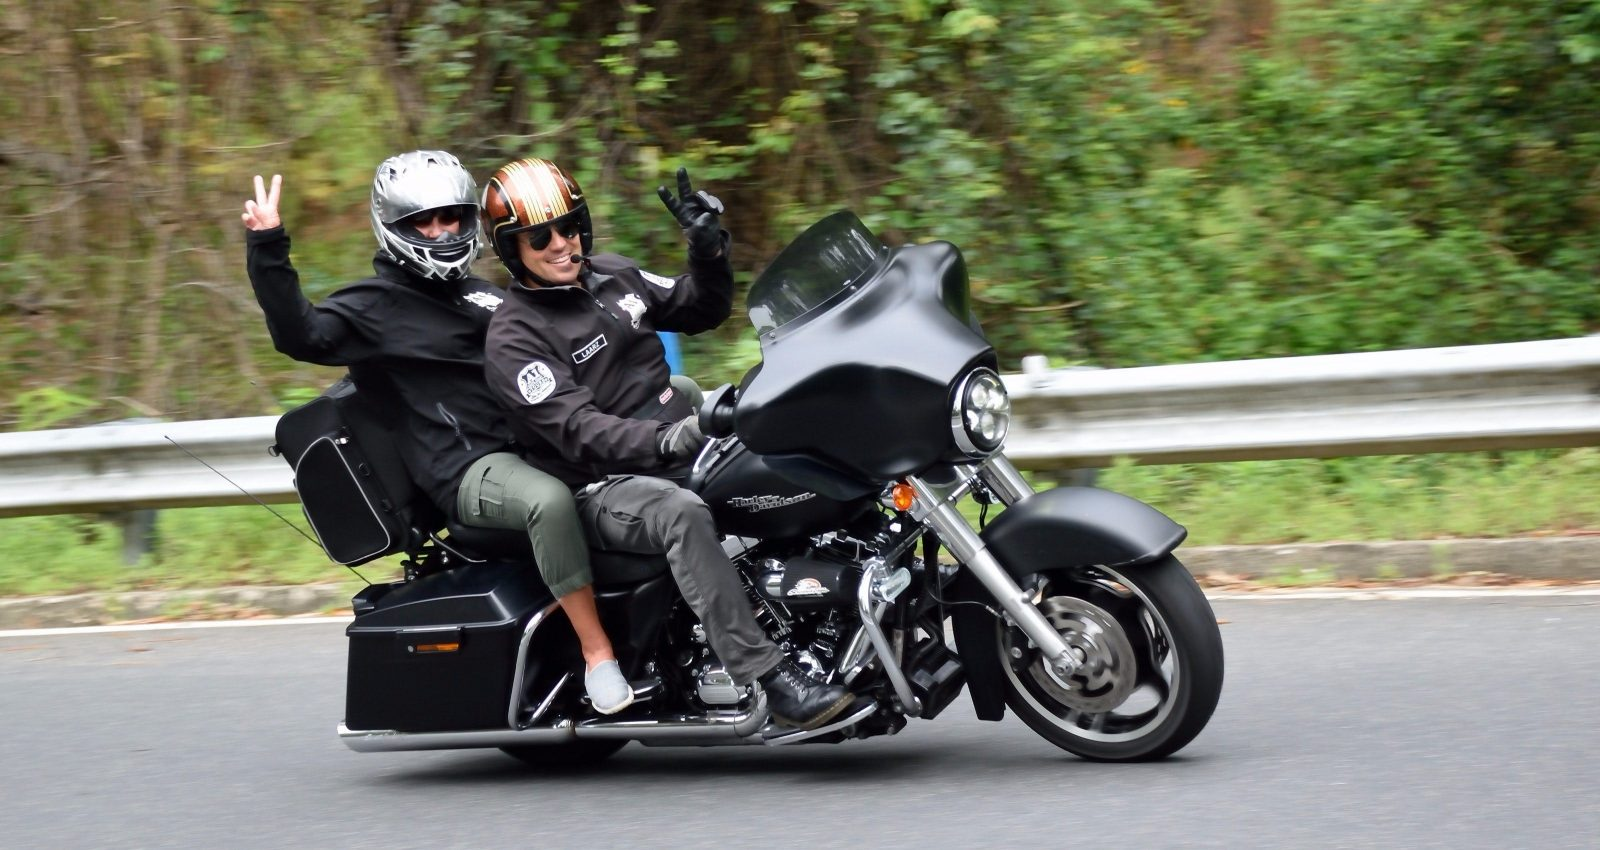 Take a chauffeured Harley Tour of the Coffs Coast NSW